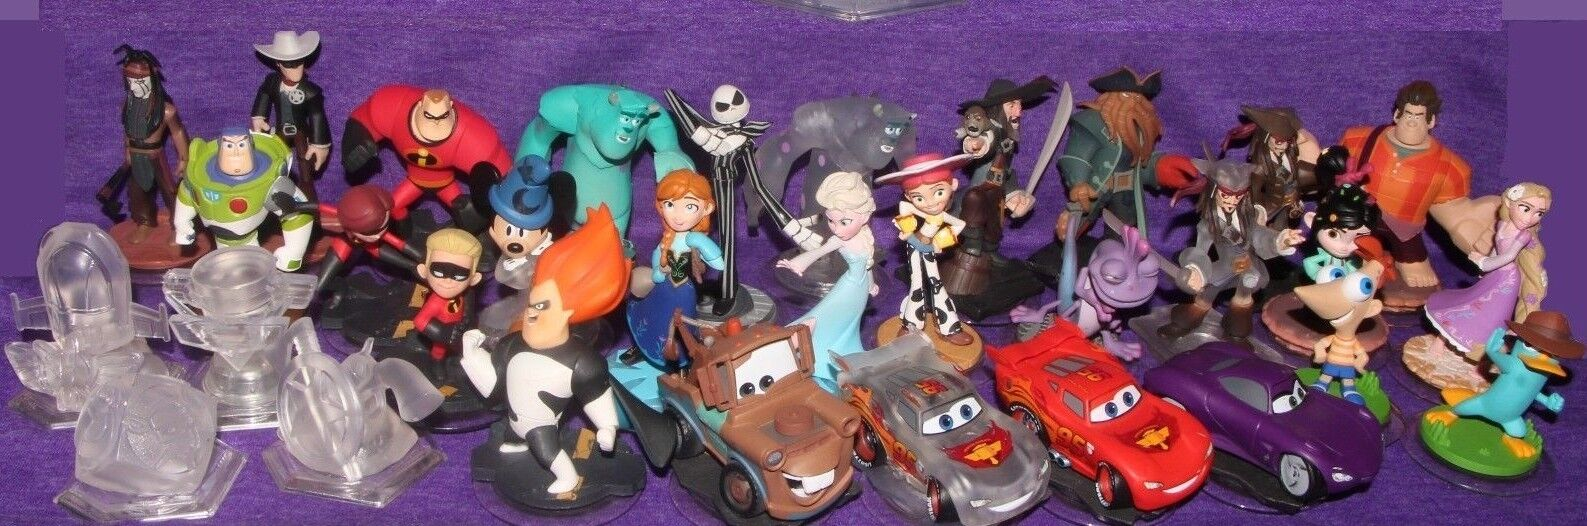 DIsney Infinity 1.0 ORIGINALS You Pick your Figures Free Ship Buy 4 get 1 Free